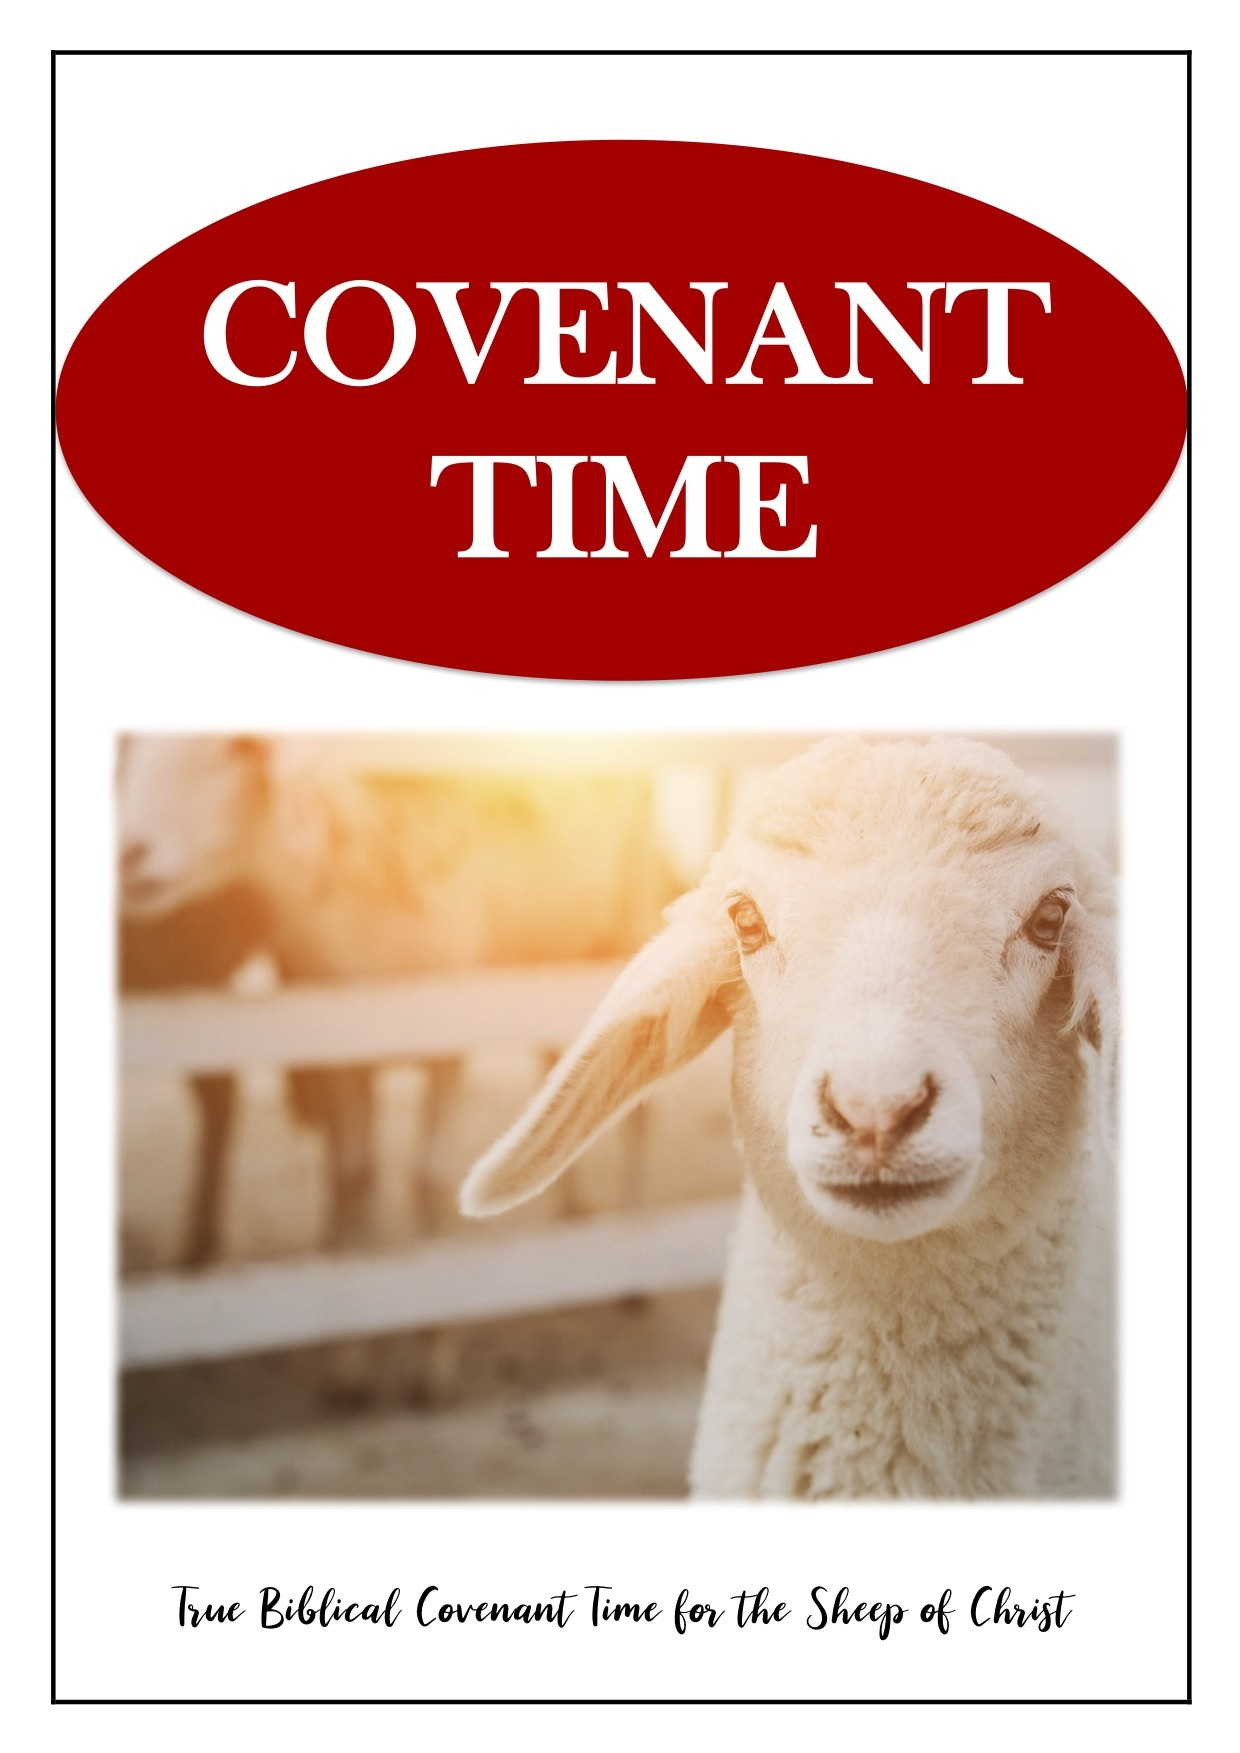 Revised - Covenant Time Booklet 2019 SKU EBCTB